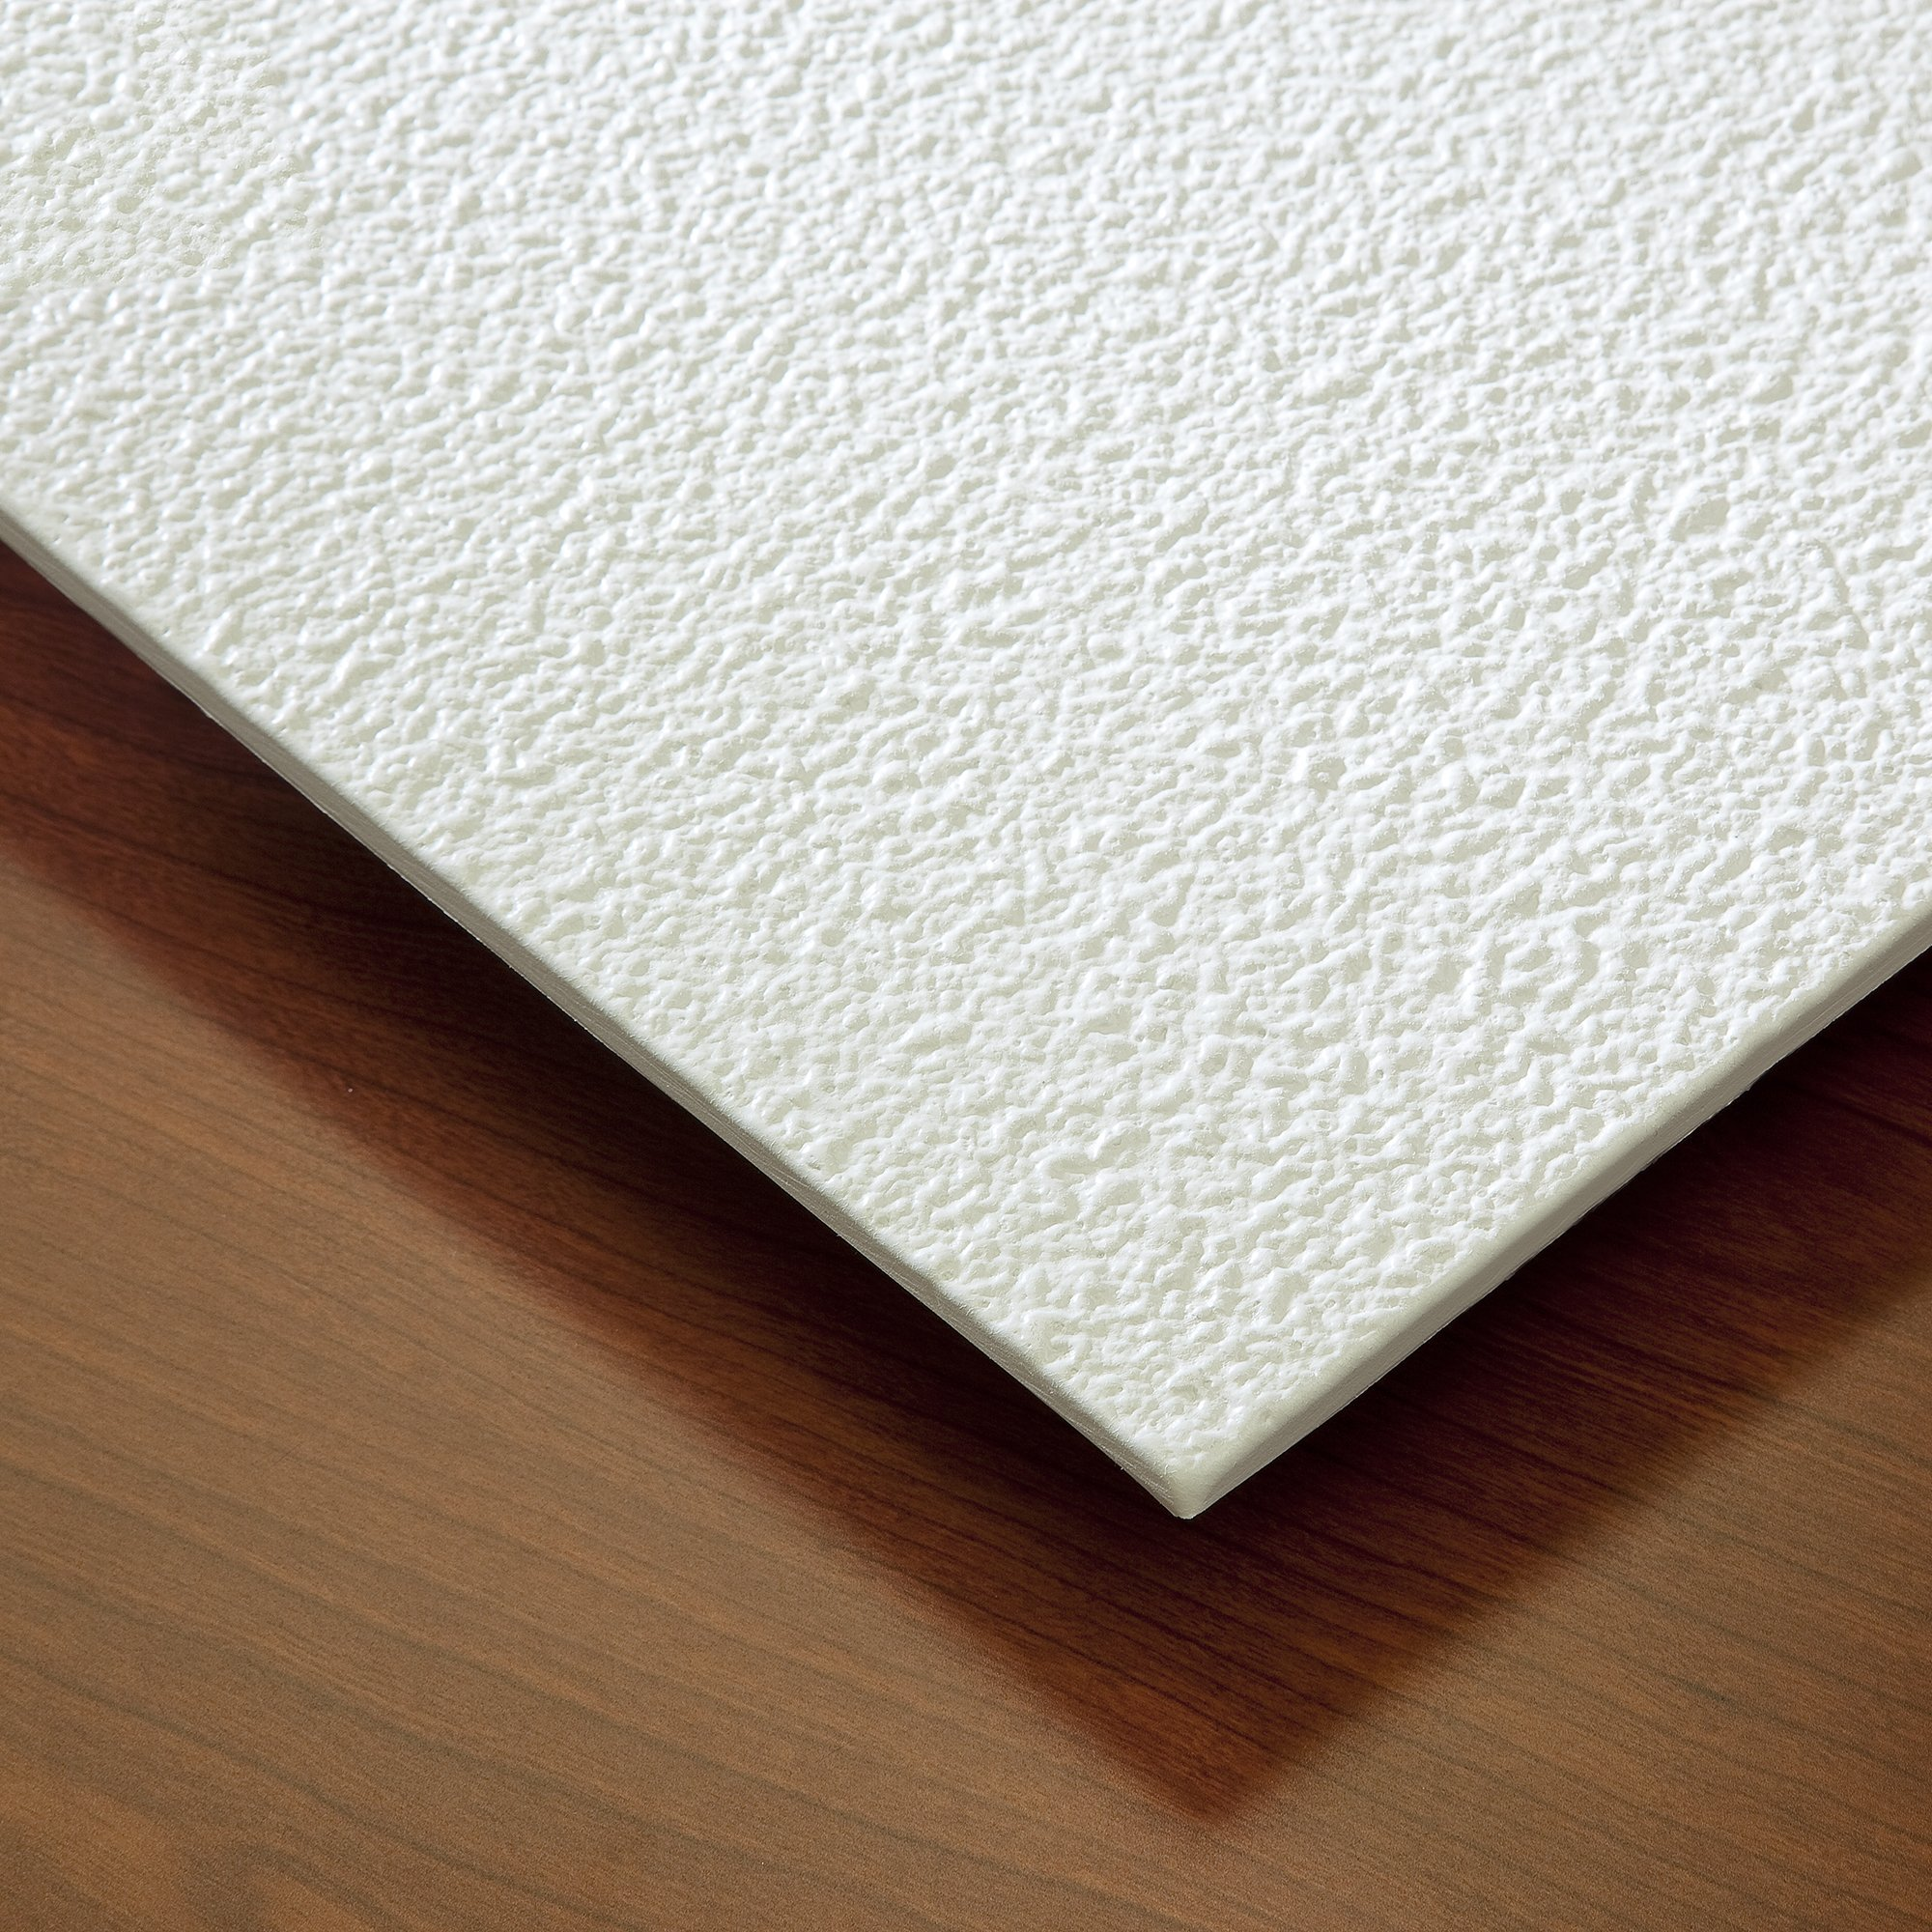 Genesis Easy Installation Stucco Pro Lay-In White Ceiling Tile/Ceiling Panel, Carton of 12 (2' x 2' Tile) by Genesis (Image #5)